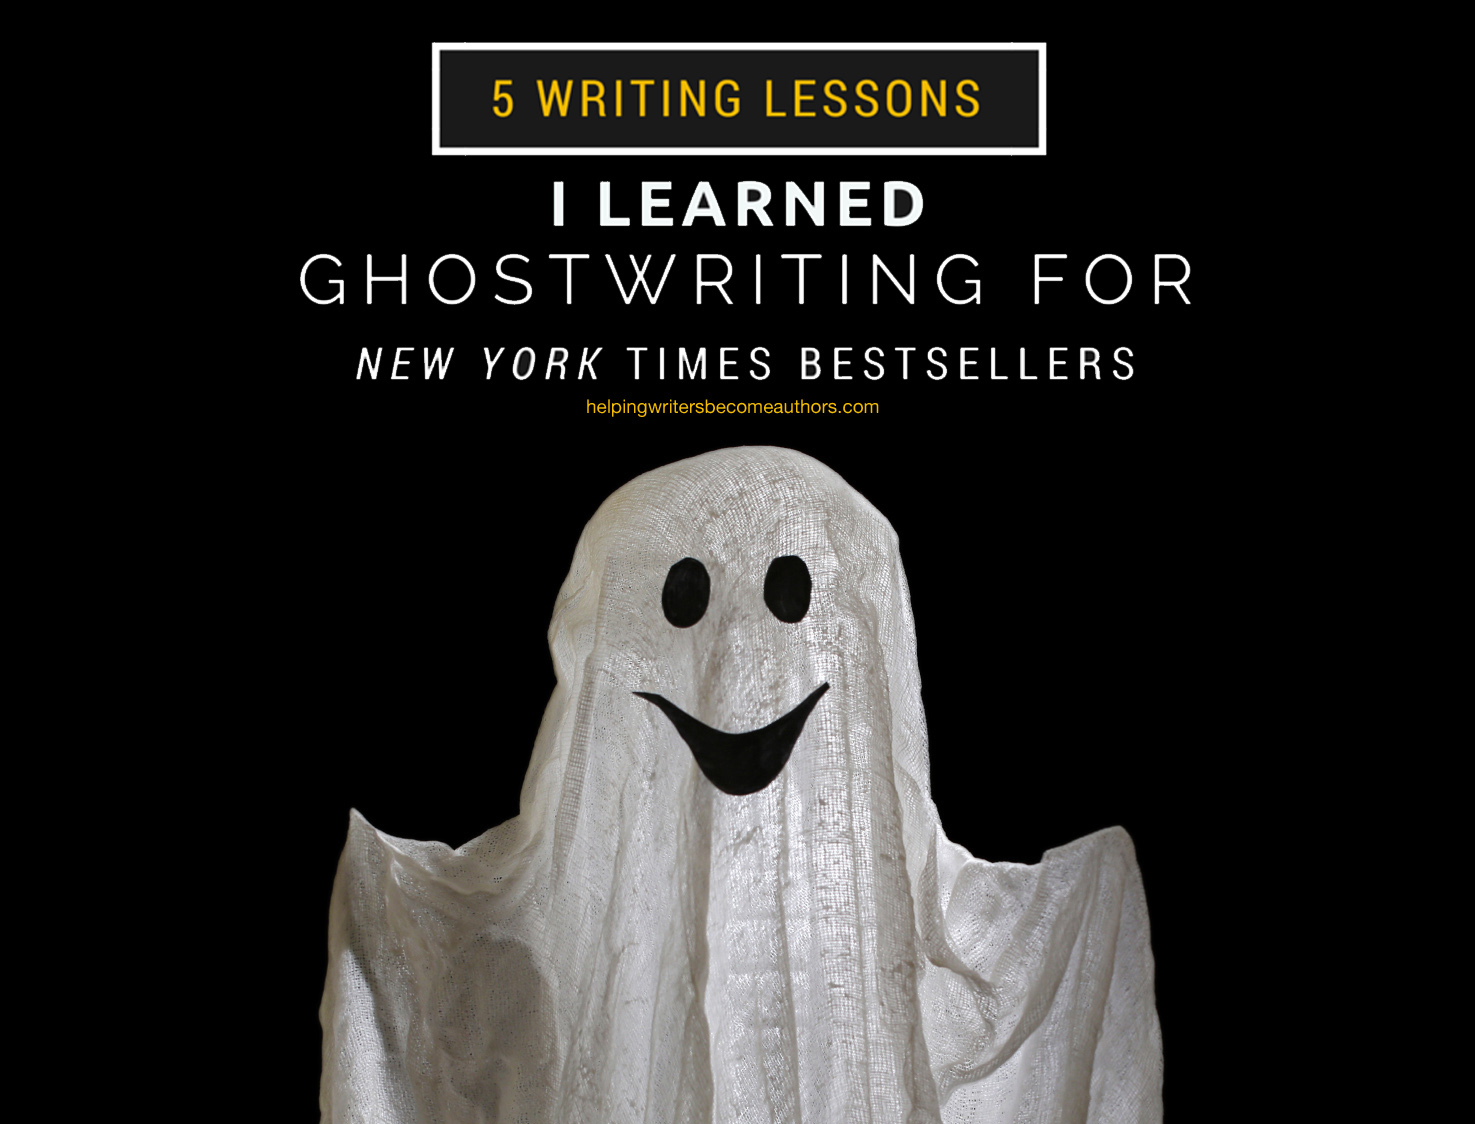 5 Writing Lessons I Learned Ghostwriting for New York Times Bestsellers